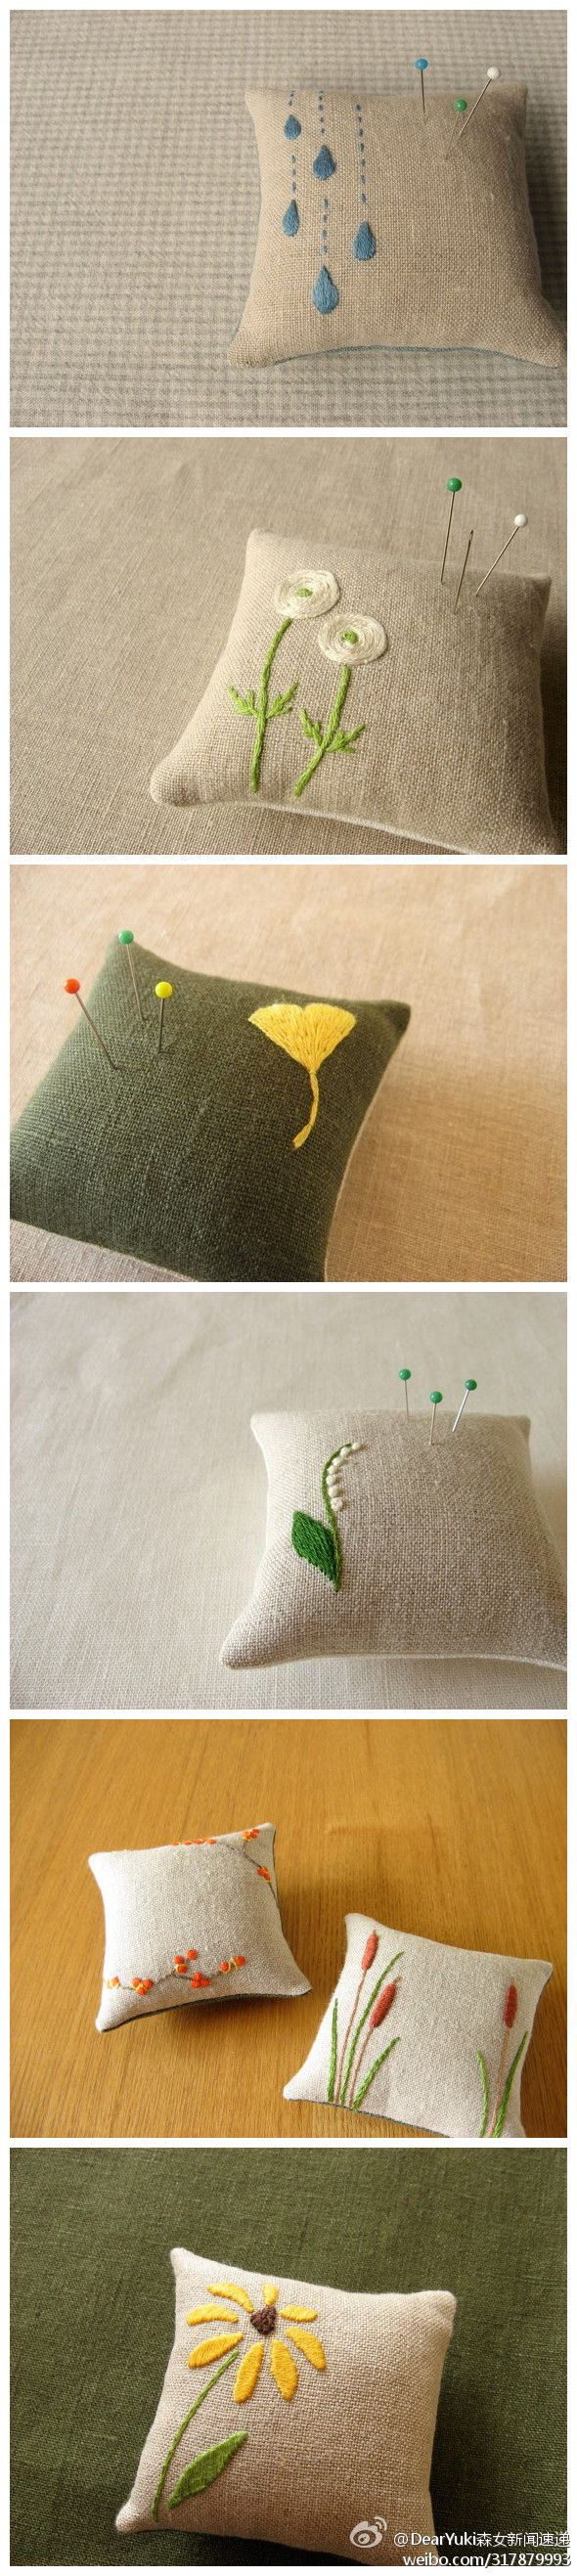 so sweet and simple. Perfect project for those with a limited attention span for embroidery. :)